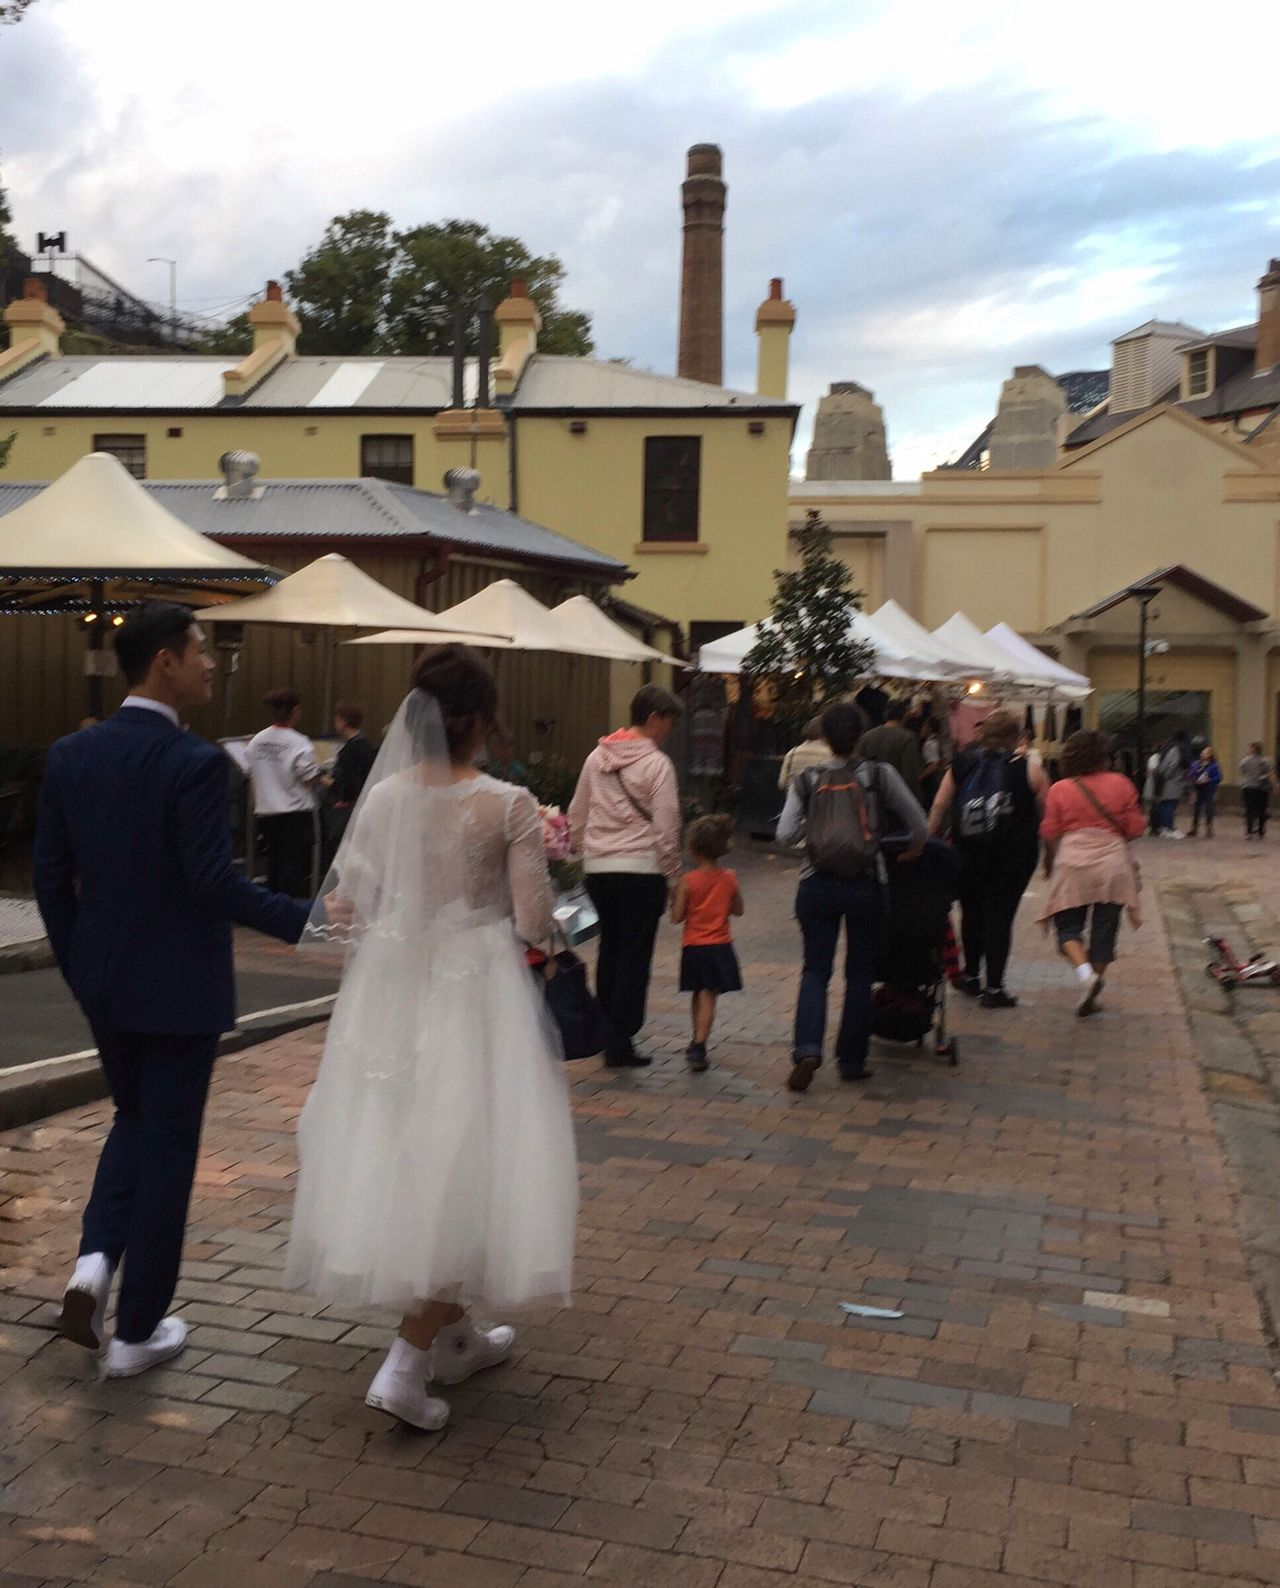 The Street Photographer - 2017 EyeEm Awards Real People Building Exterior Built Structure Celebration Men Walking Women Architecture Celebration Event Wedding Togetherness Rear View Day Large Group Of People Outdoors Lifestyles Full Length Bride Groom Sky (null)Getting Married The Rocks Sydney